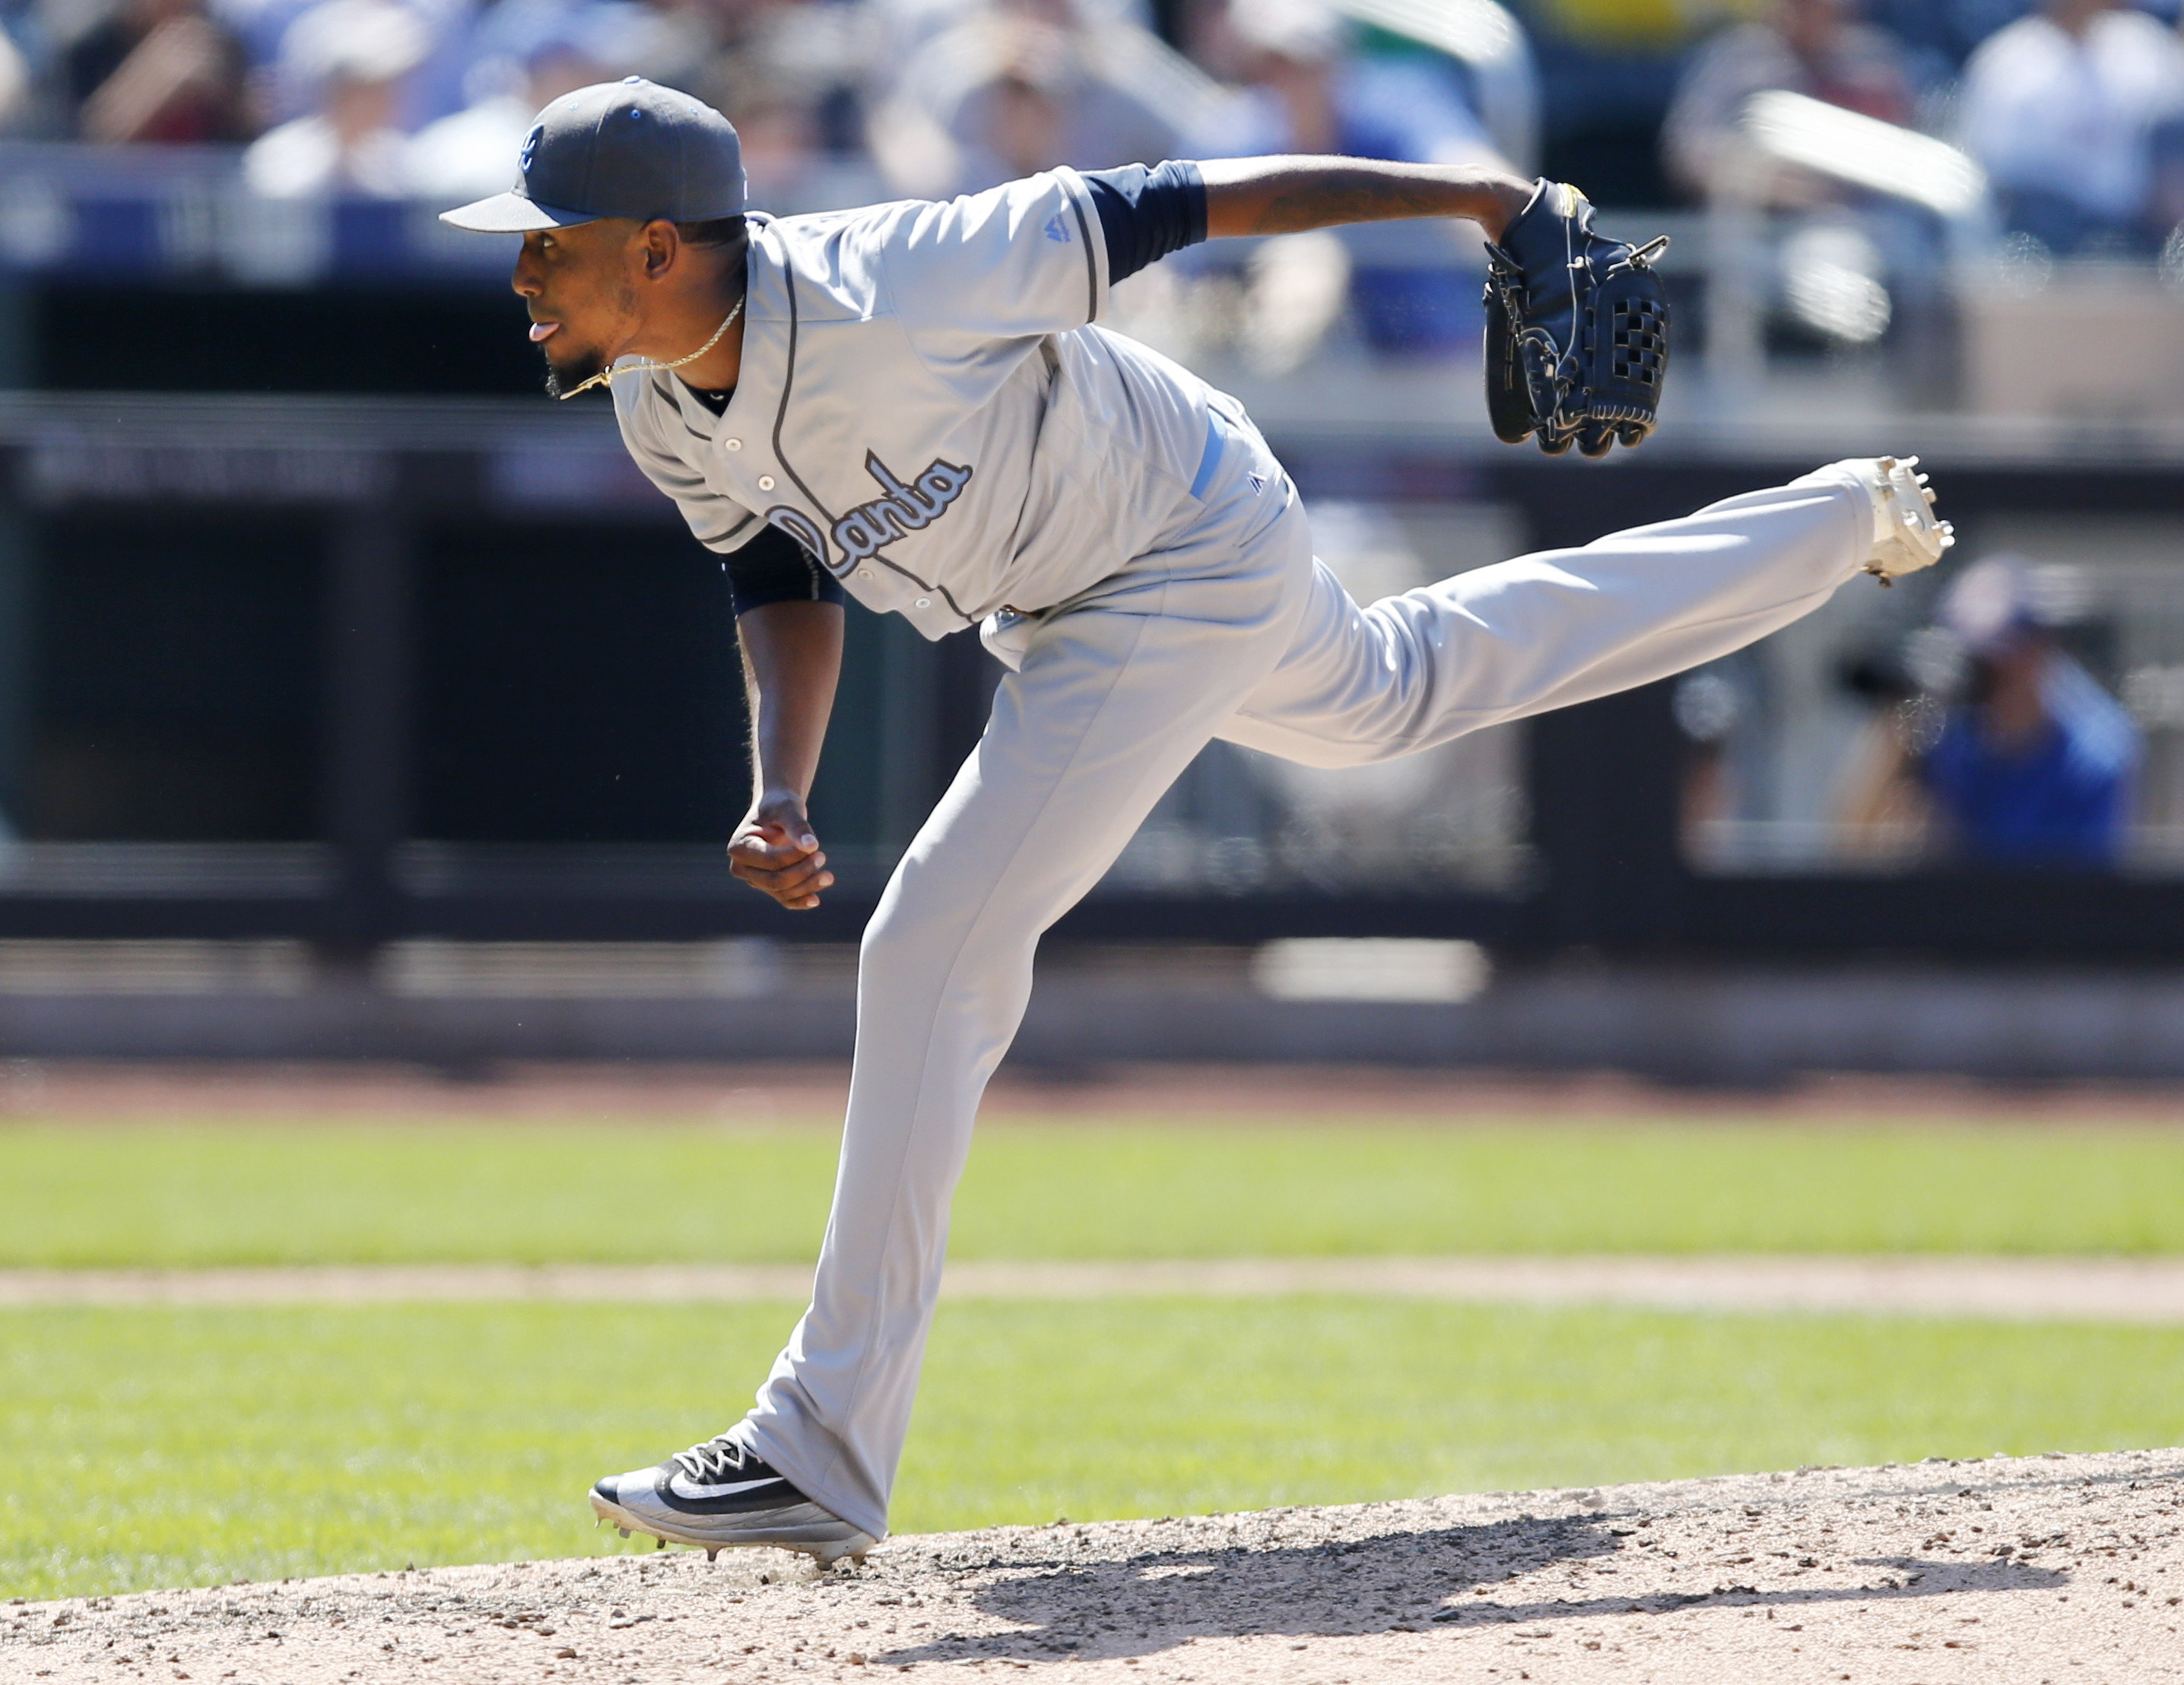 Atlanta Braves starting pitcher Julio Teheran (49) follows through on a pitch during the eighth inning of a baseball game against the New York Mets, Sunday, June 19, 2016, in New York. (AP Photo/Kathy Willens)